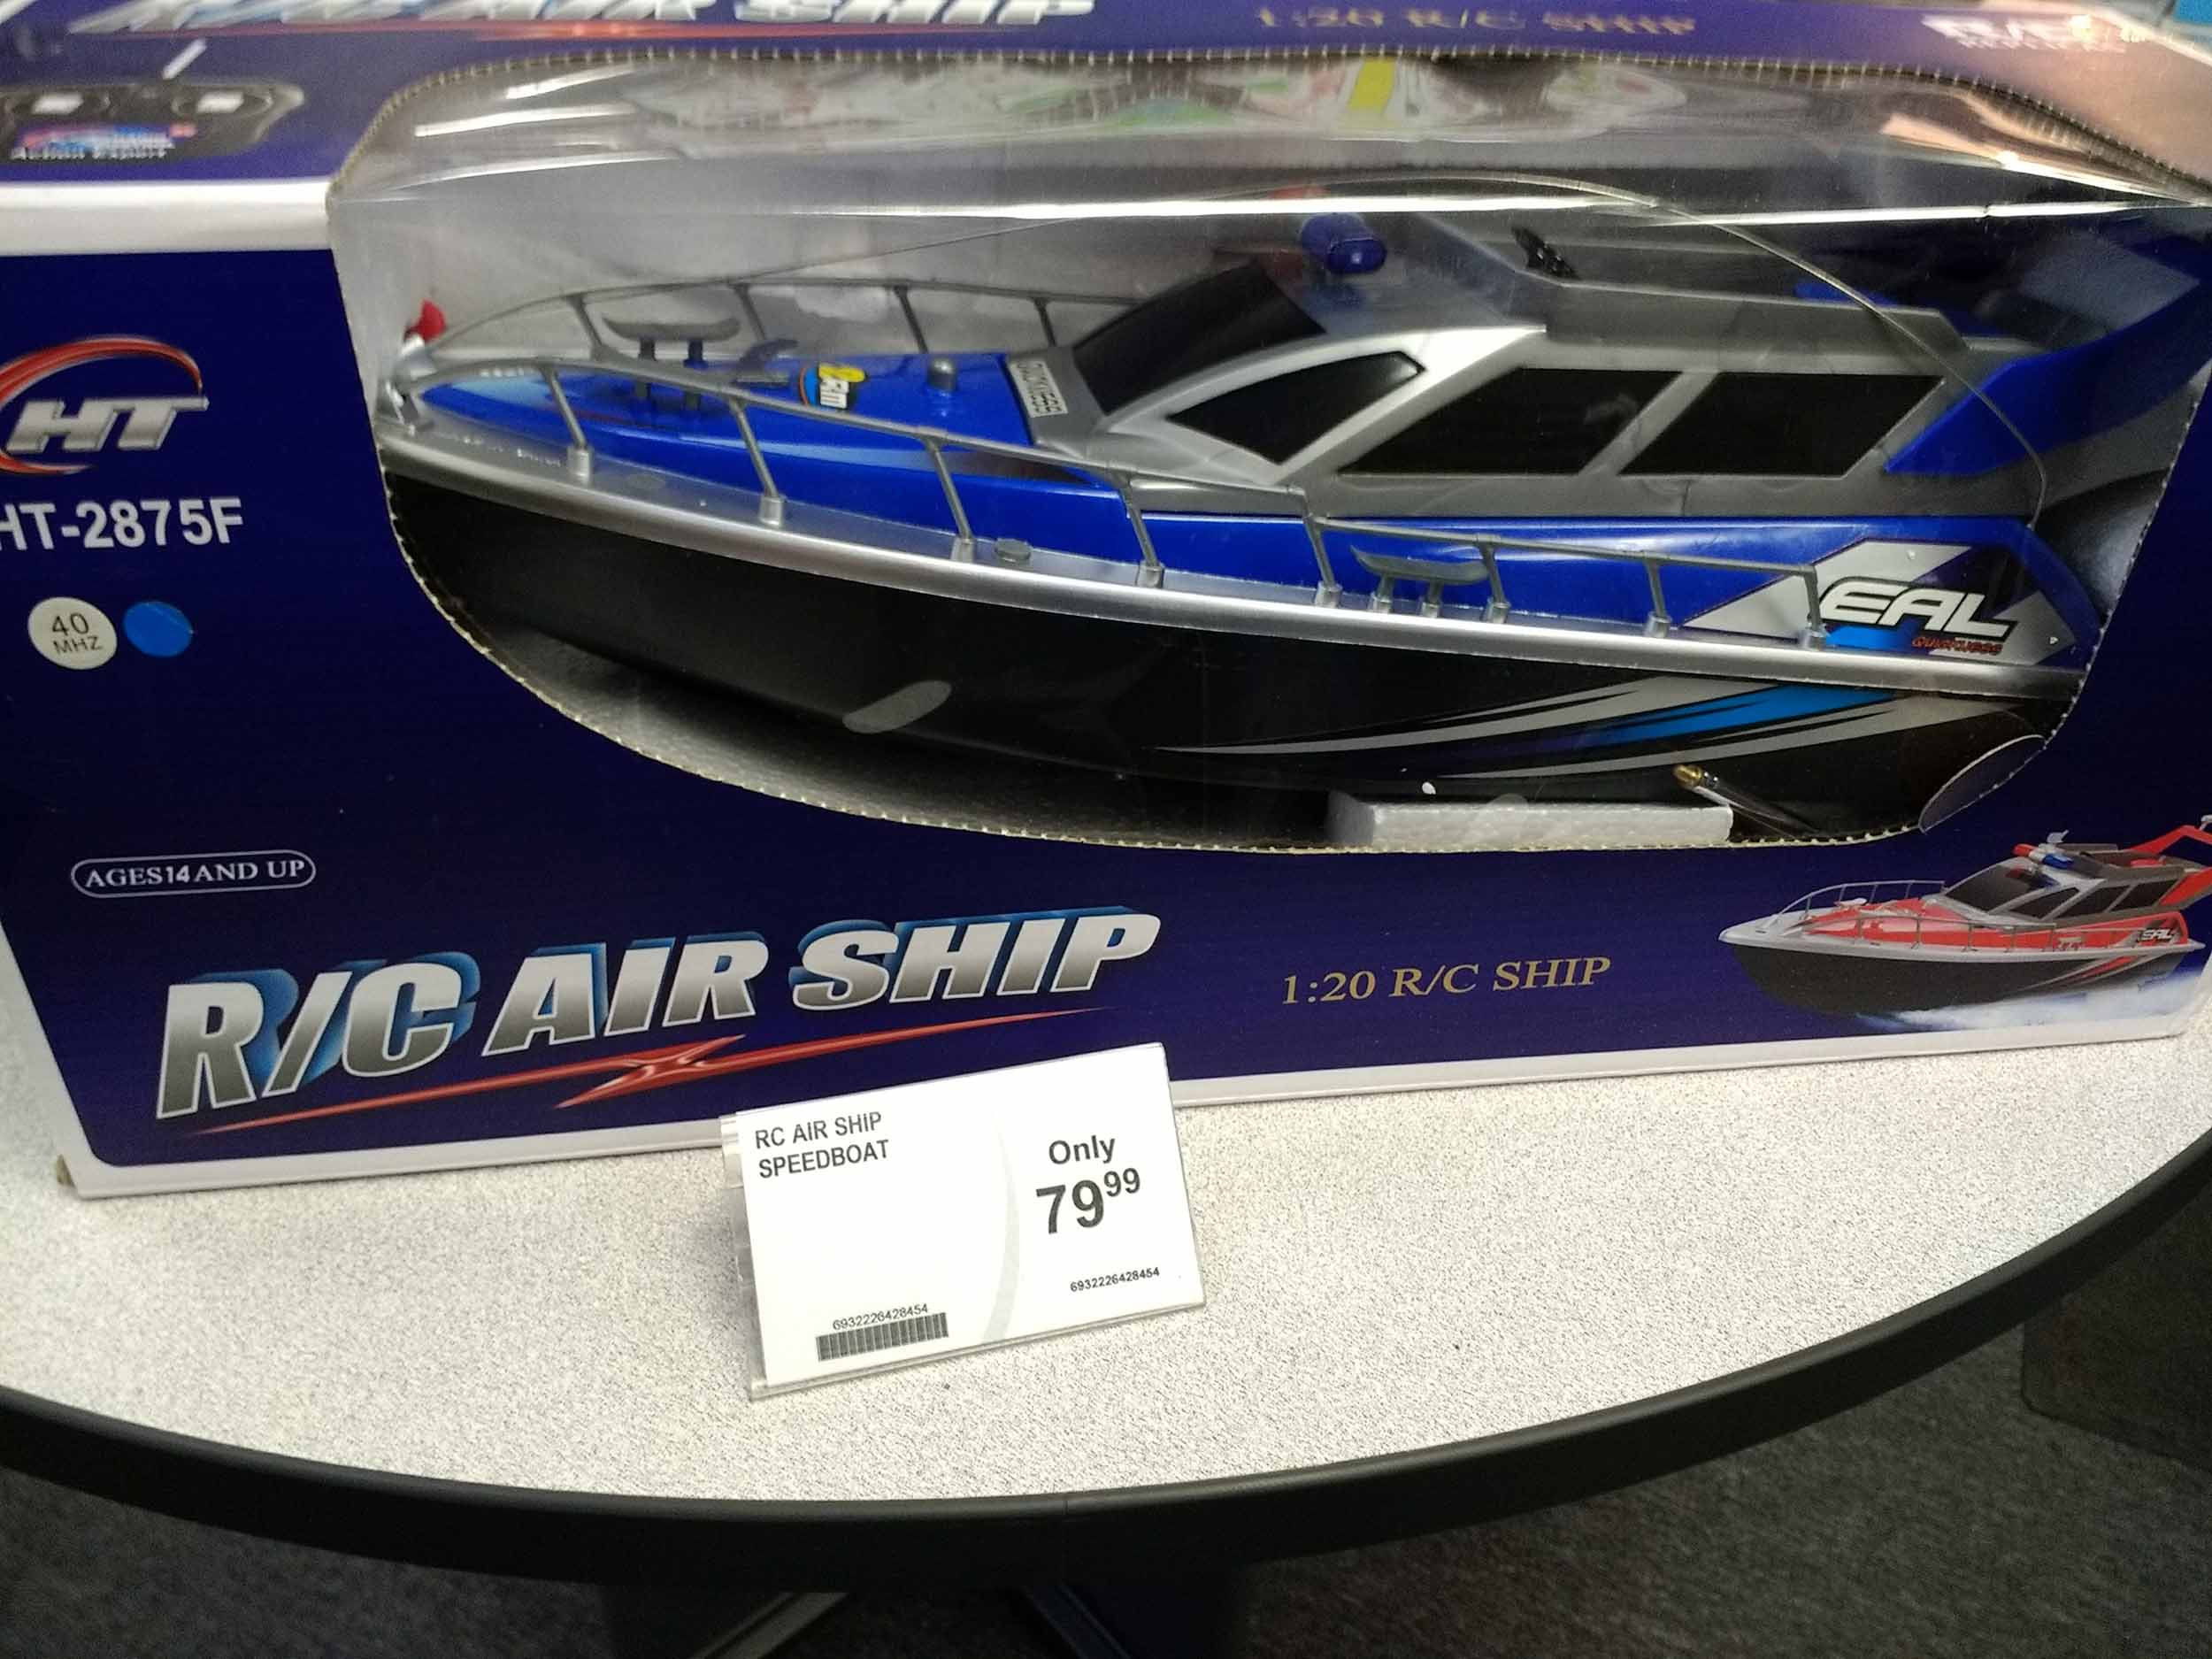 A radio controlled ship makes great entertainment for kids old and young.